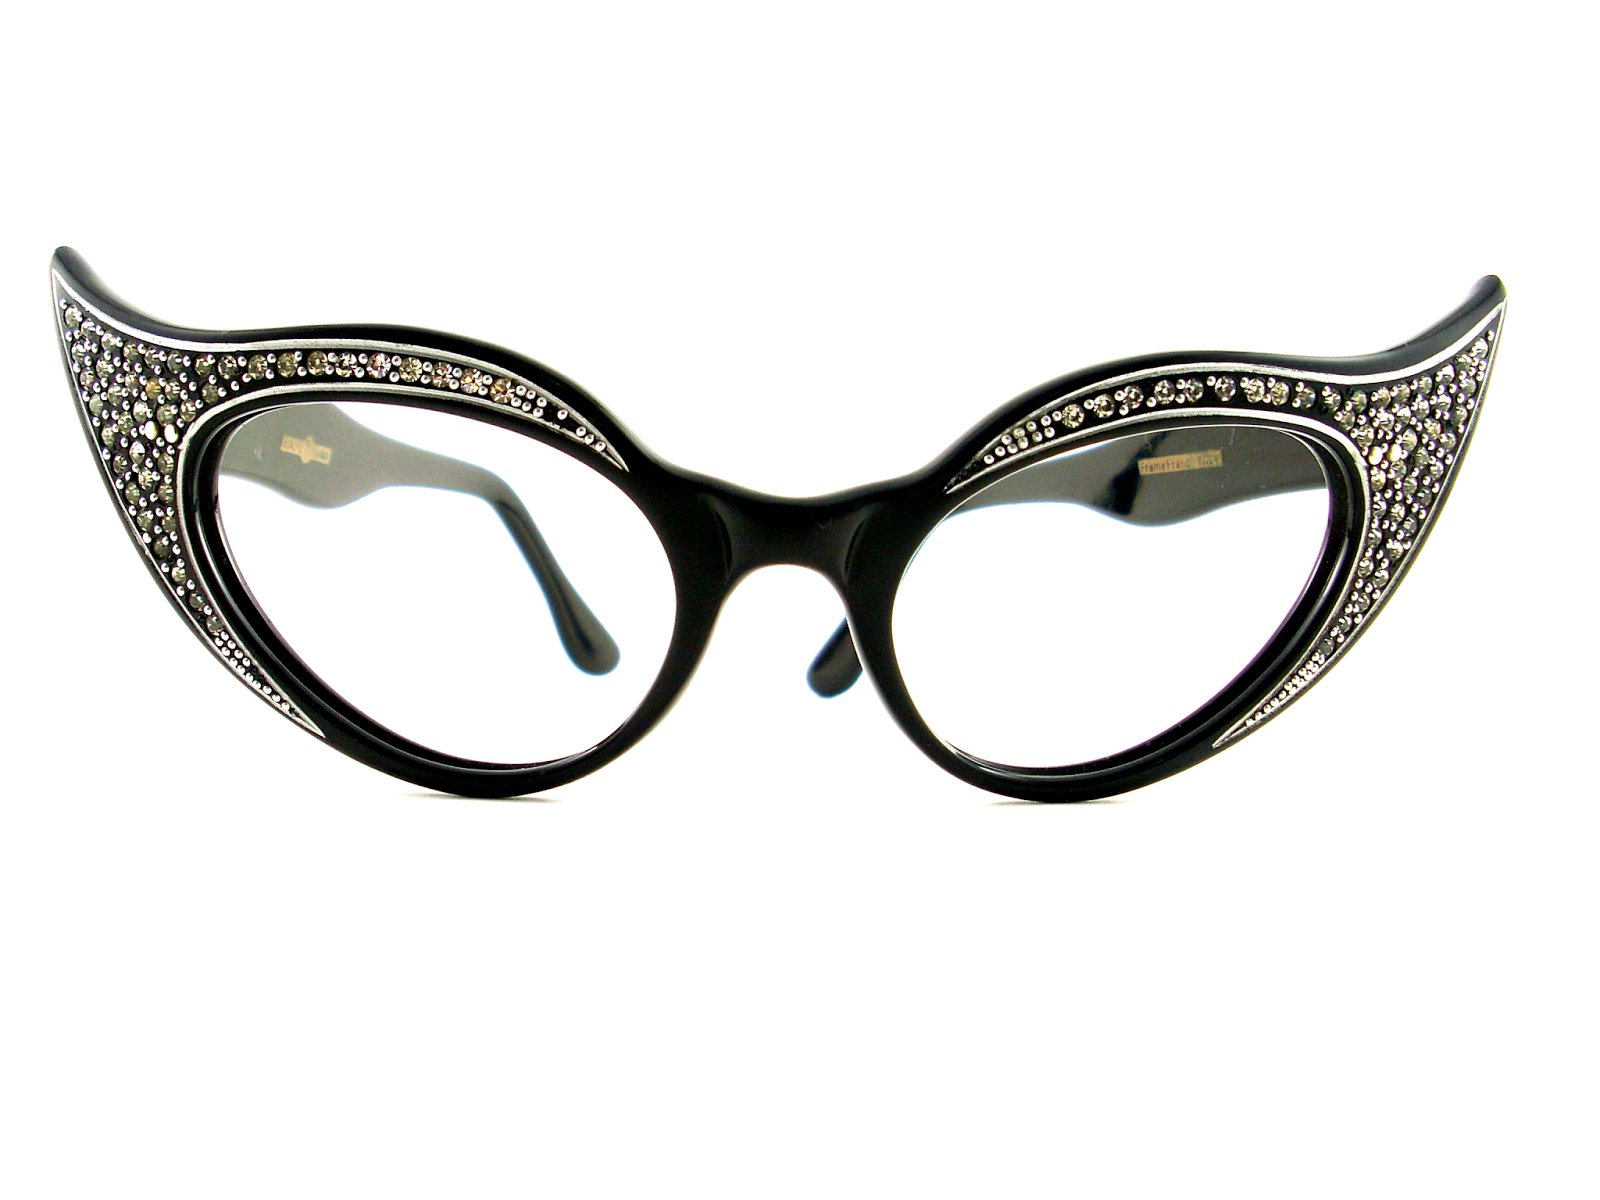 vintage 50s cat eye glasses eyeglasses sunglasses frame